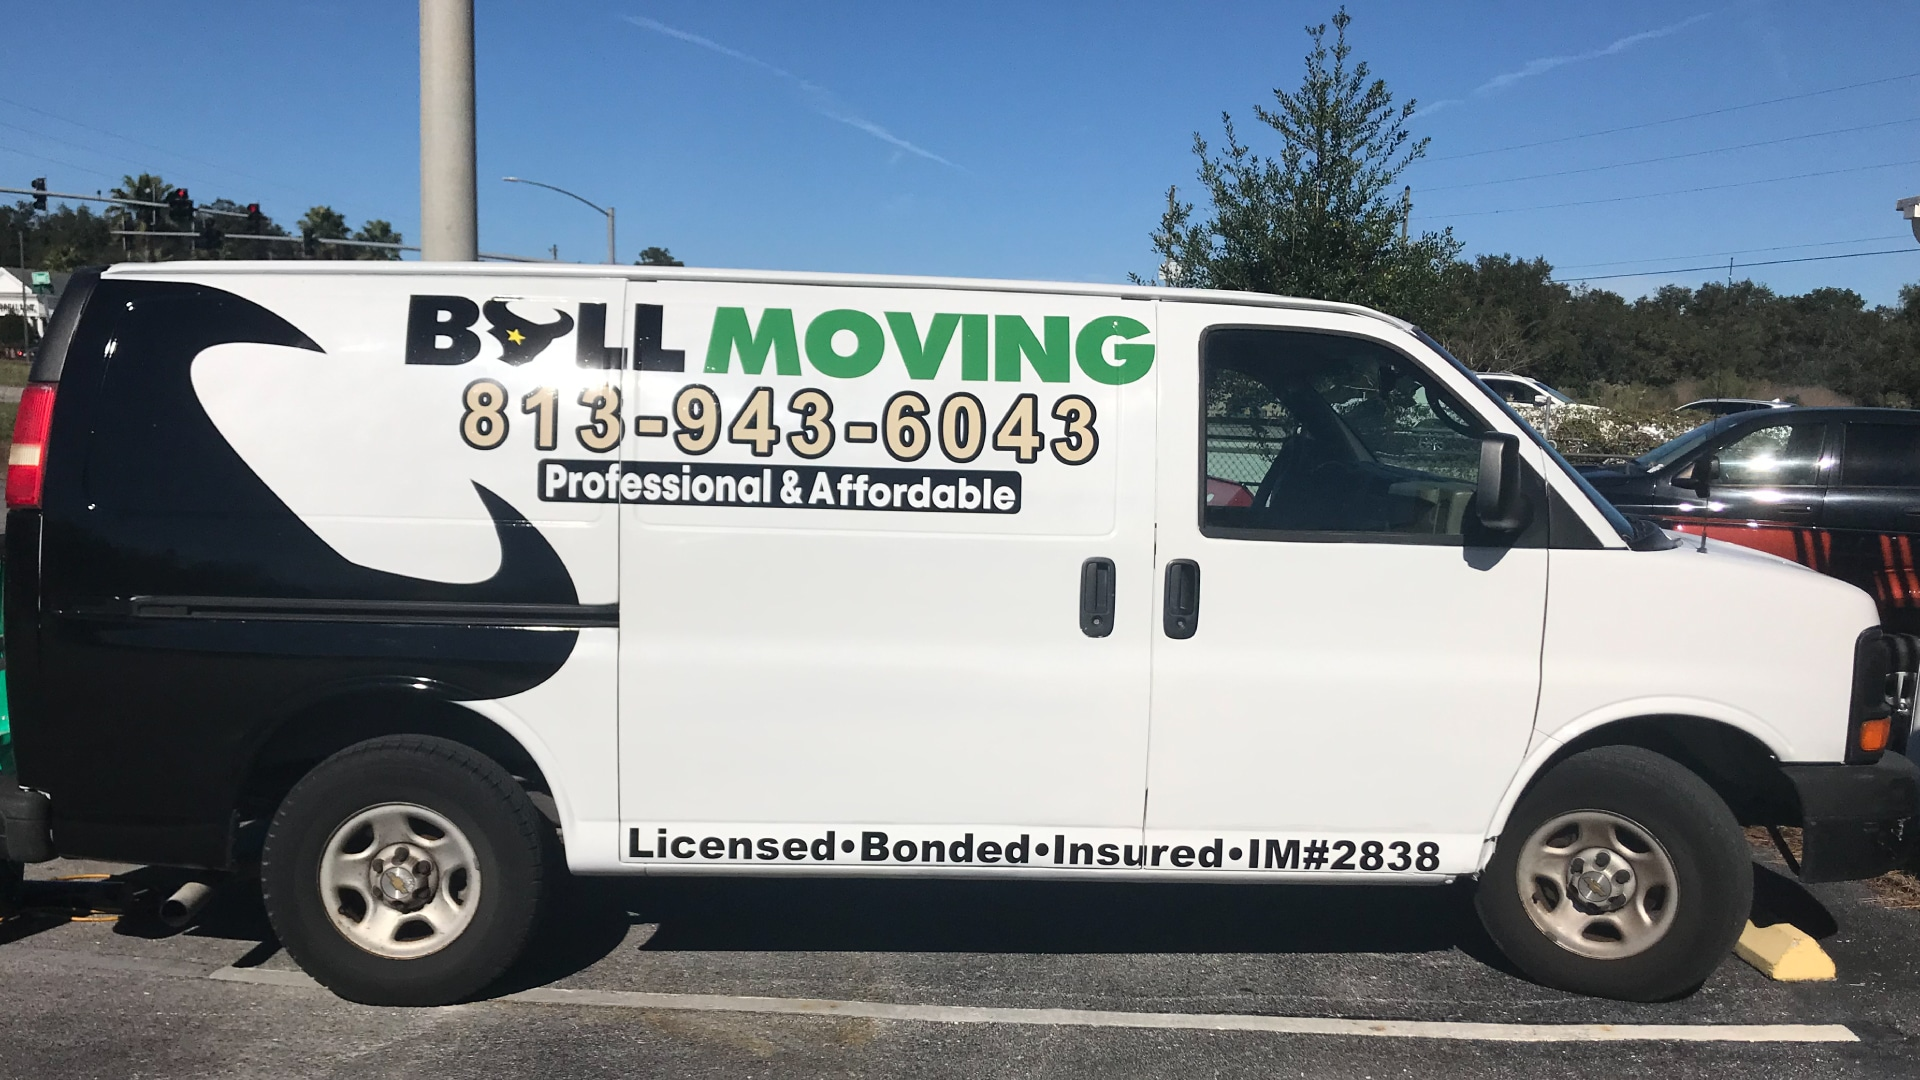 Bull Moving Van